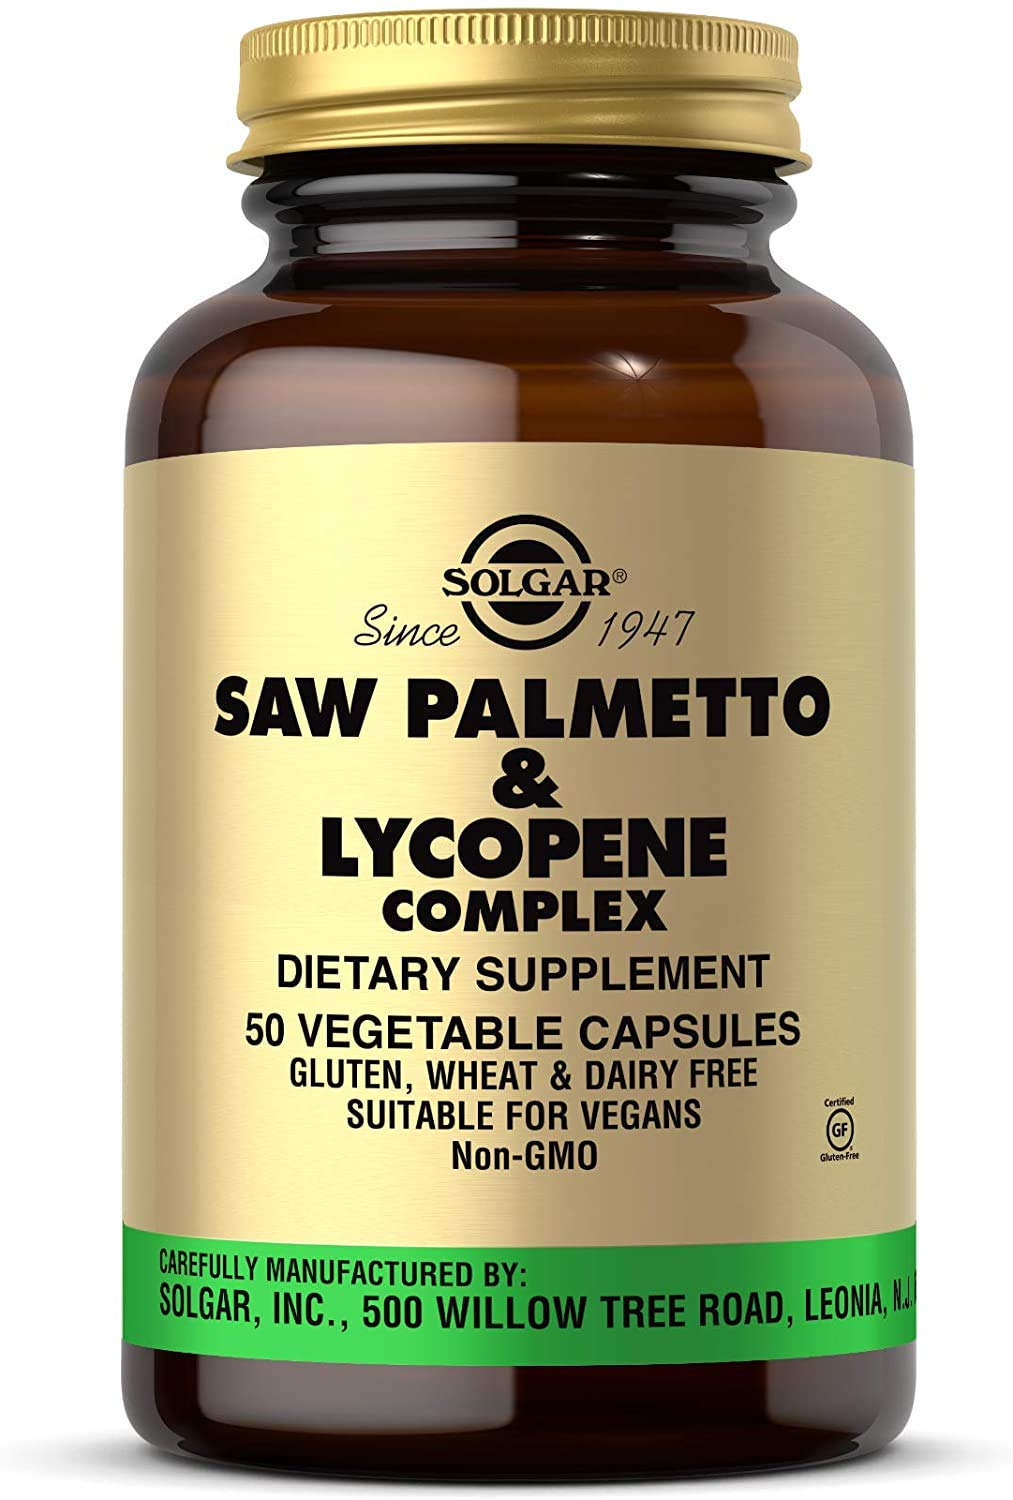 Solgar Saw Palmetto Lycopene Complex Vegetable Capsules, 50 Count